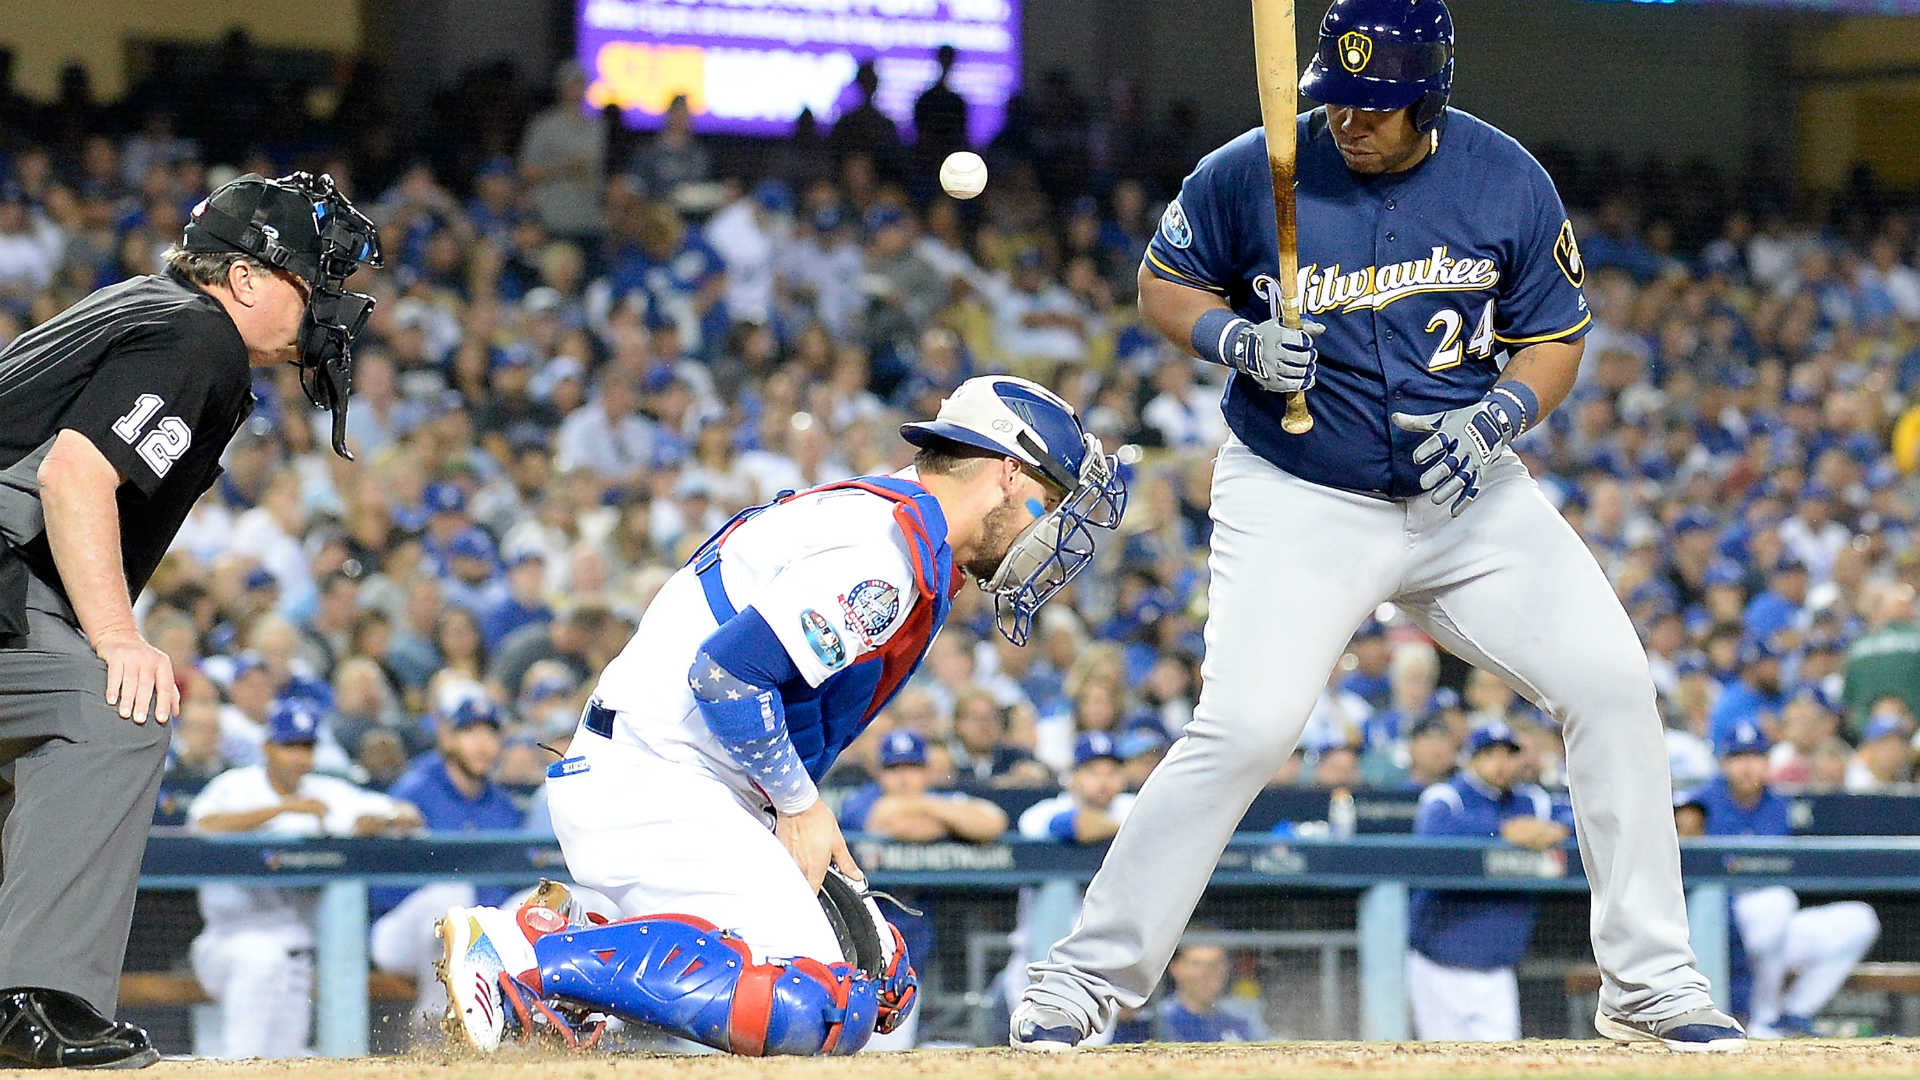 Brewers reportedly believe Dodgers are using video to steal signs